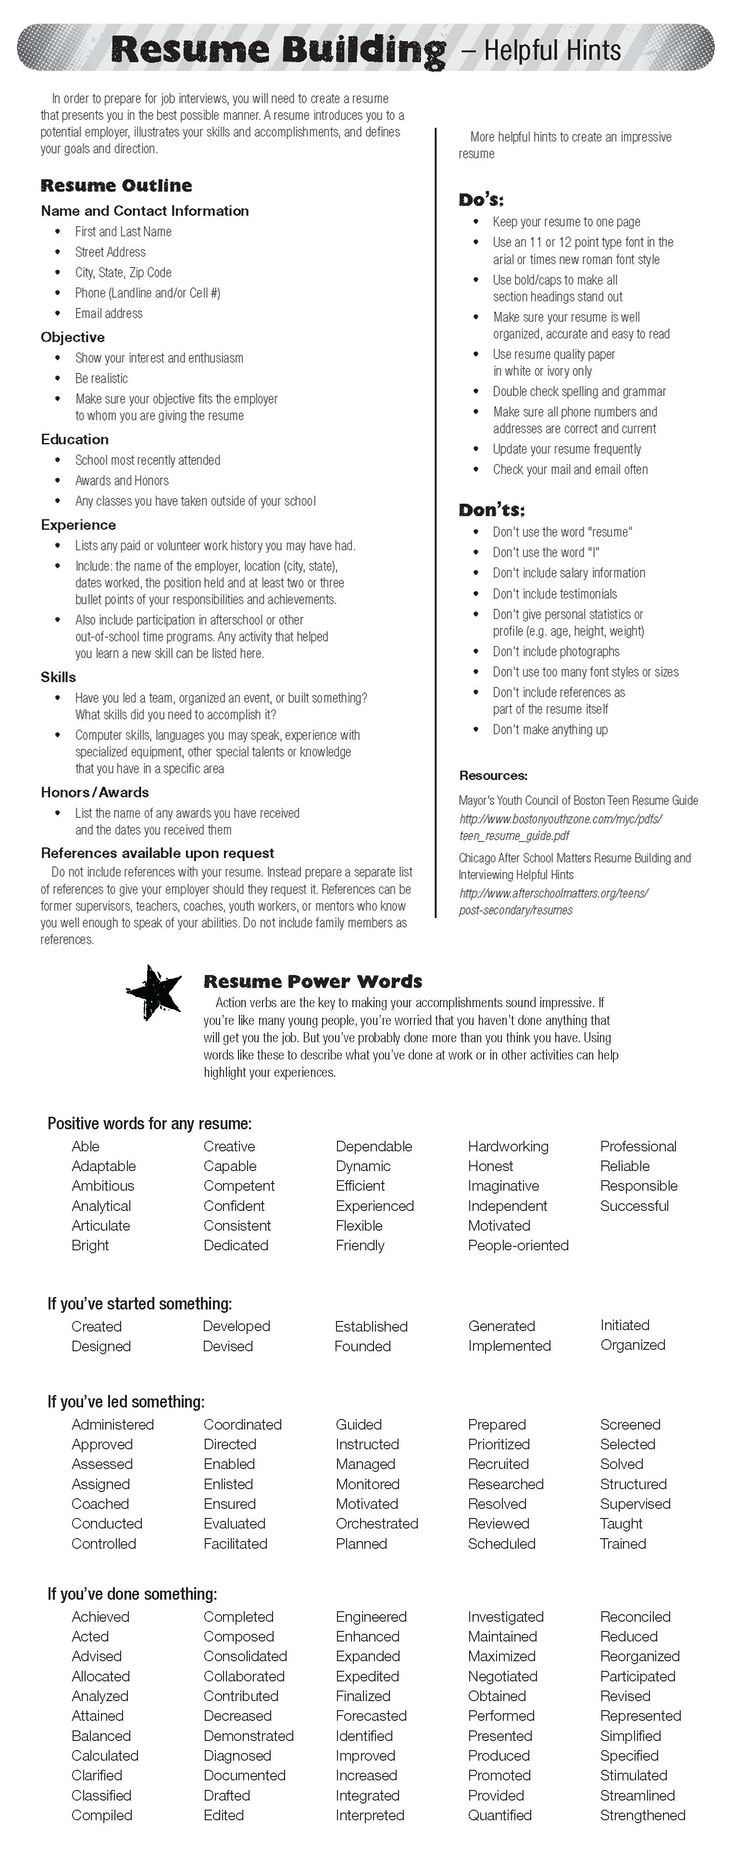 Opposenewapstandardsus  Picturesque  Ideas About Resume On Pinterest  Cv Format Resume Cv And  With Fetching  Ideas About Resume On Pinterest  Cv Format Resume Cv And Resume Templates With Delectable Inside Sales Resume Also Sample Resume For Administrative Assistant In Addition Receptionist Resume Objective And Accounting Resume Objective As Well As Creative Resume Ideas Additionally What Is Resume Paper From Pinterestcom With Opposenewapstandardsus  Fetching  Ideas About Resume On Pinterest  Cv Format Resume Cv And  With Delectable  Ideas About Resume On Pinterest  Cv Format Resume Cv And Resume Templates And Picturesque Inside Sales Resume Also Sample Resume For Administrative Assistant In Addition Receptionist Resume Objective From Pinterestcom